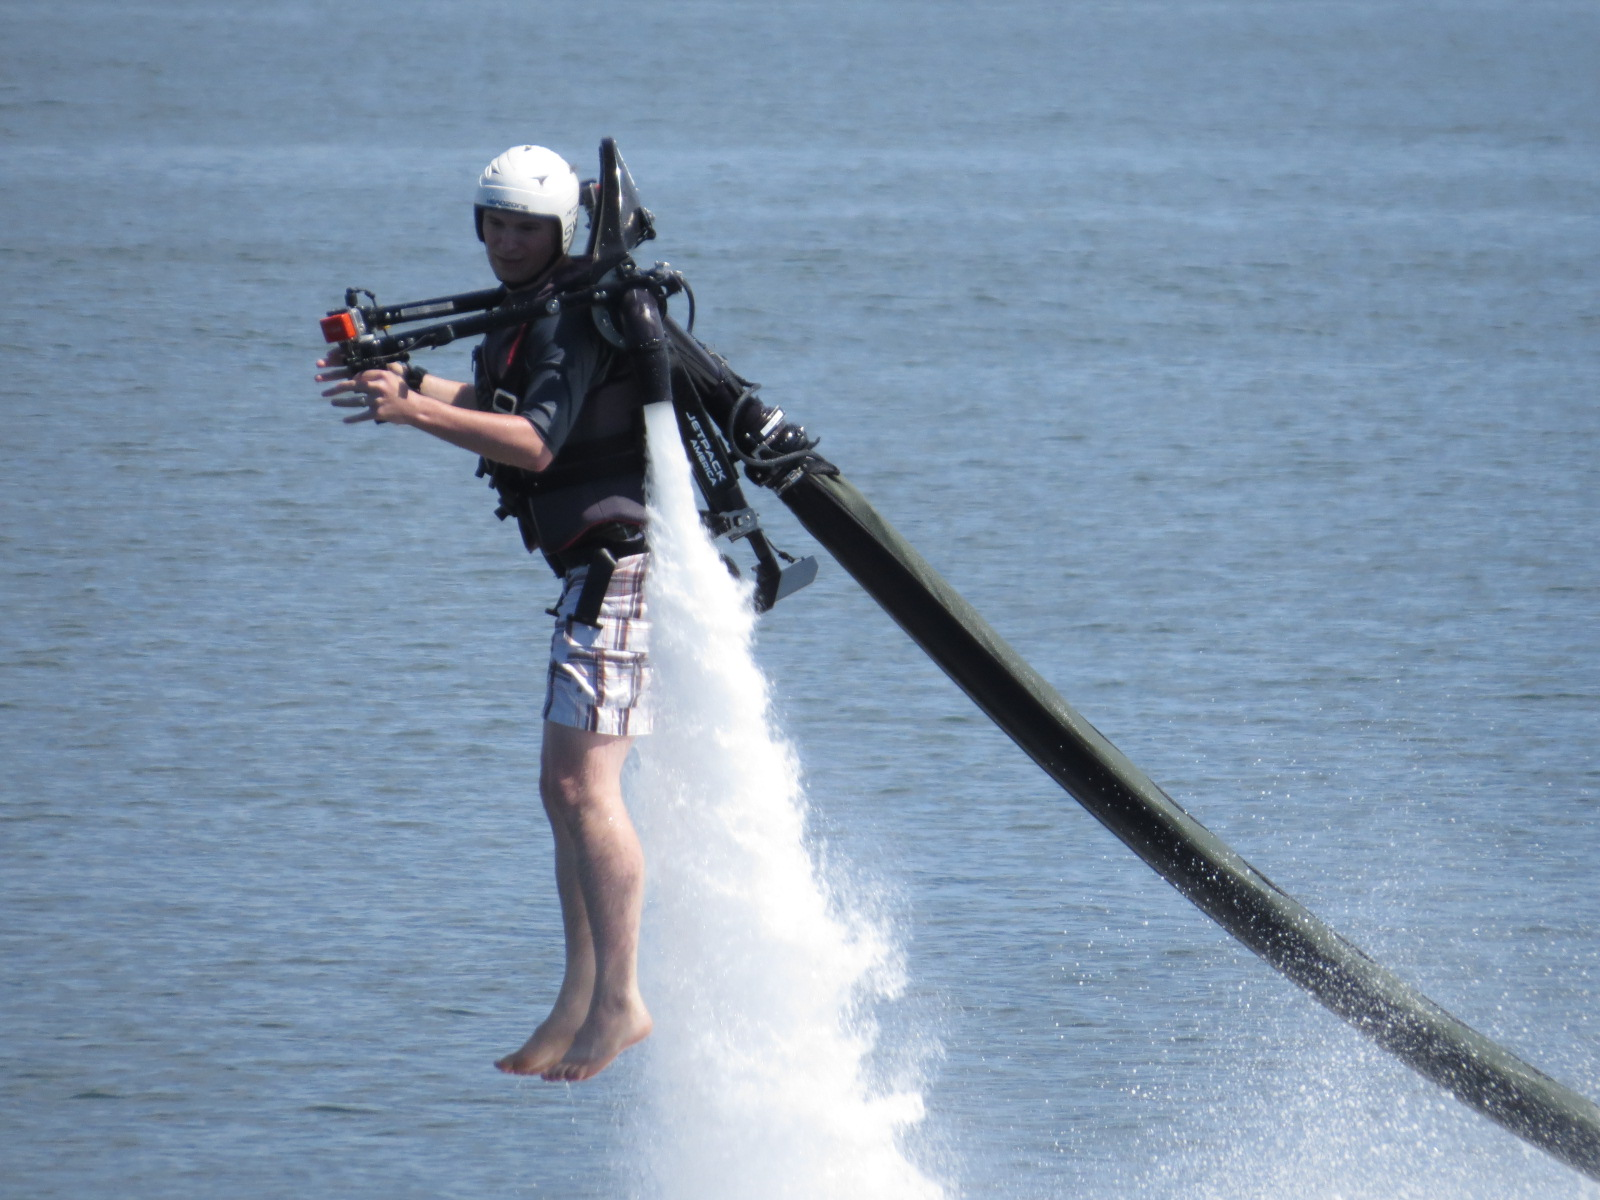 Jetpack America in Mission Bay